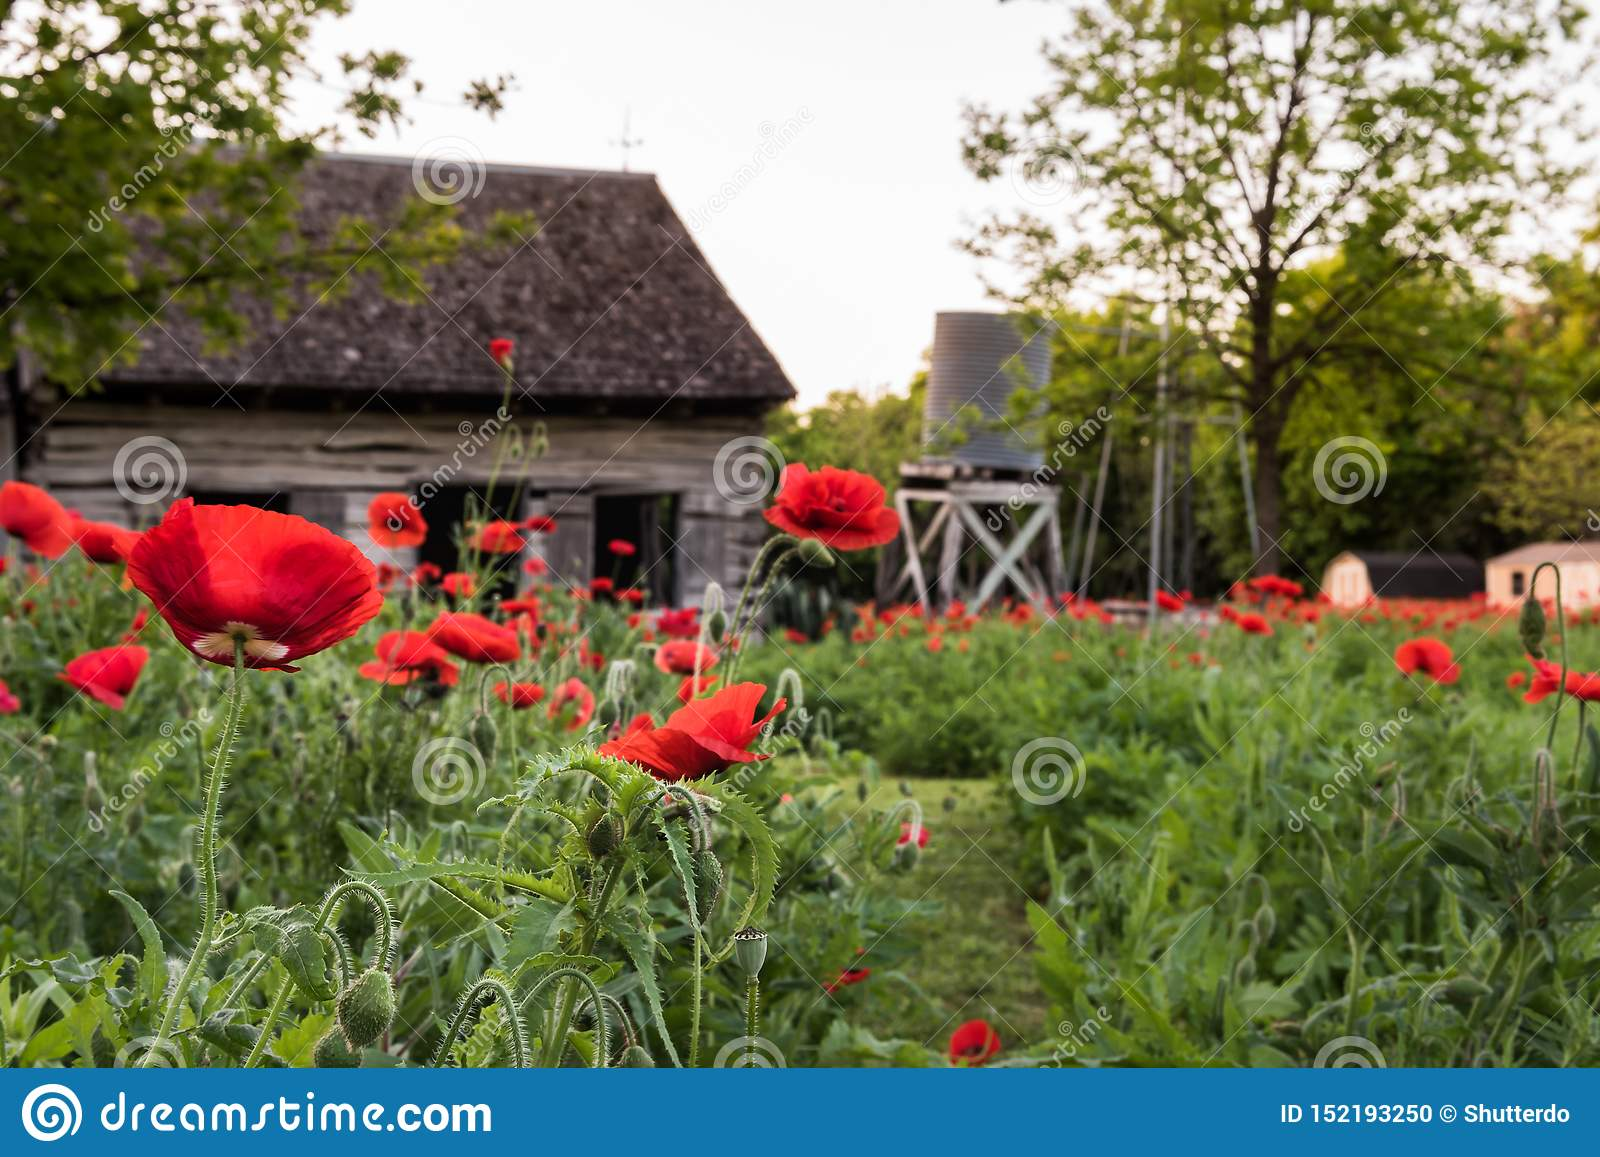 Close up view of red poppies with old shed and water tank